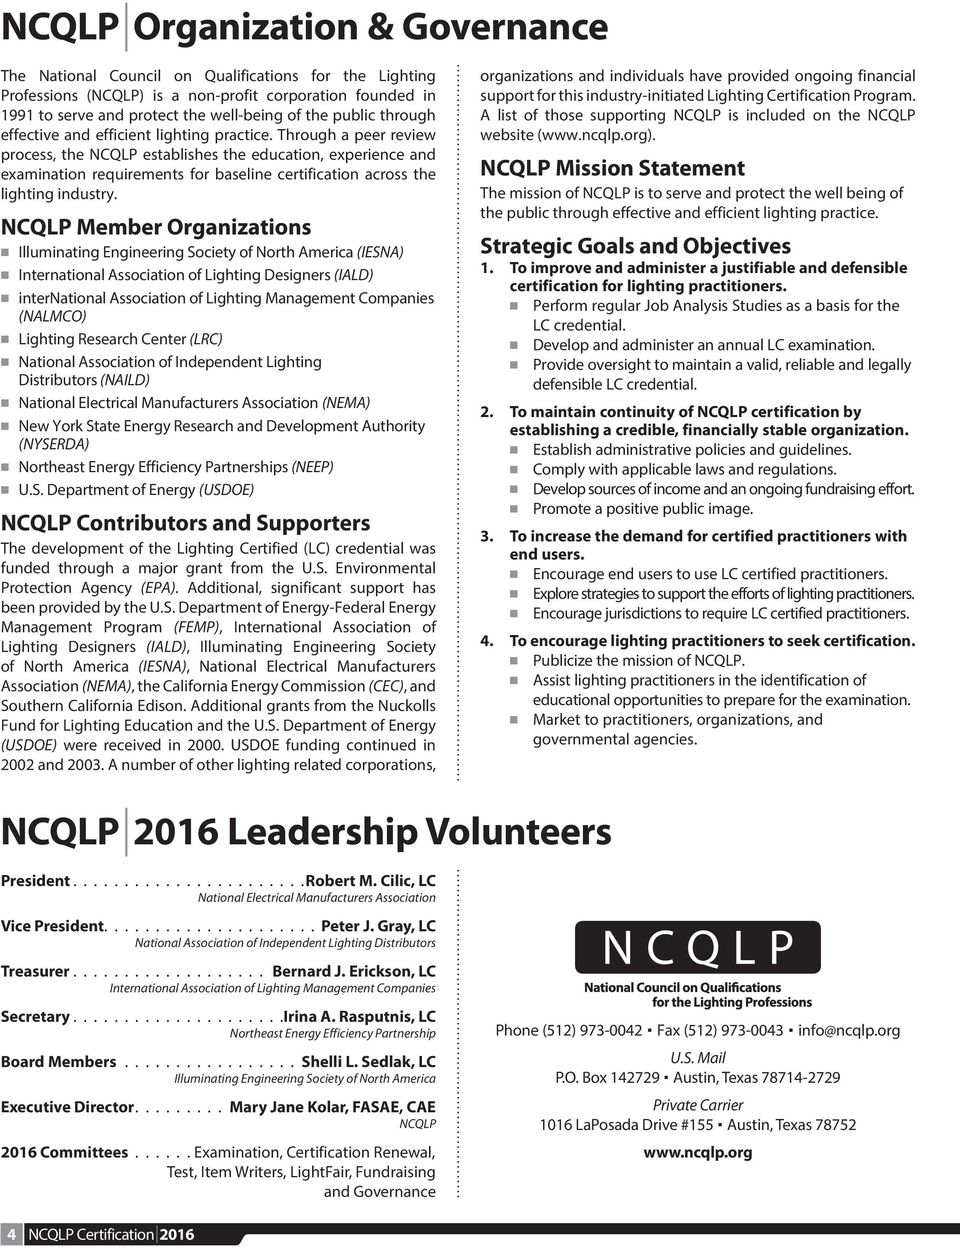 Through a peer review process, the NCQLP establishes the education,  experience and examination requirements